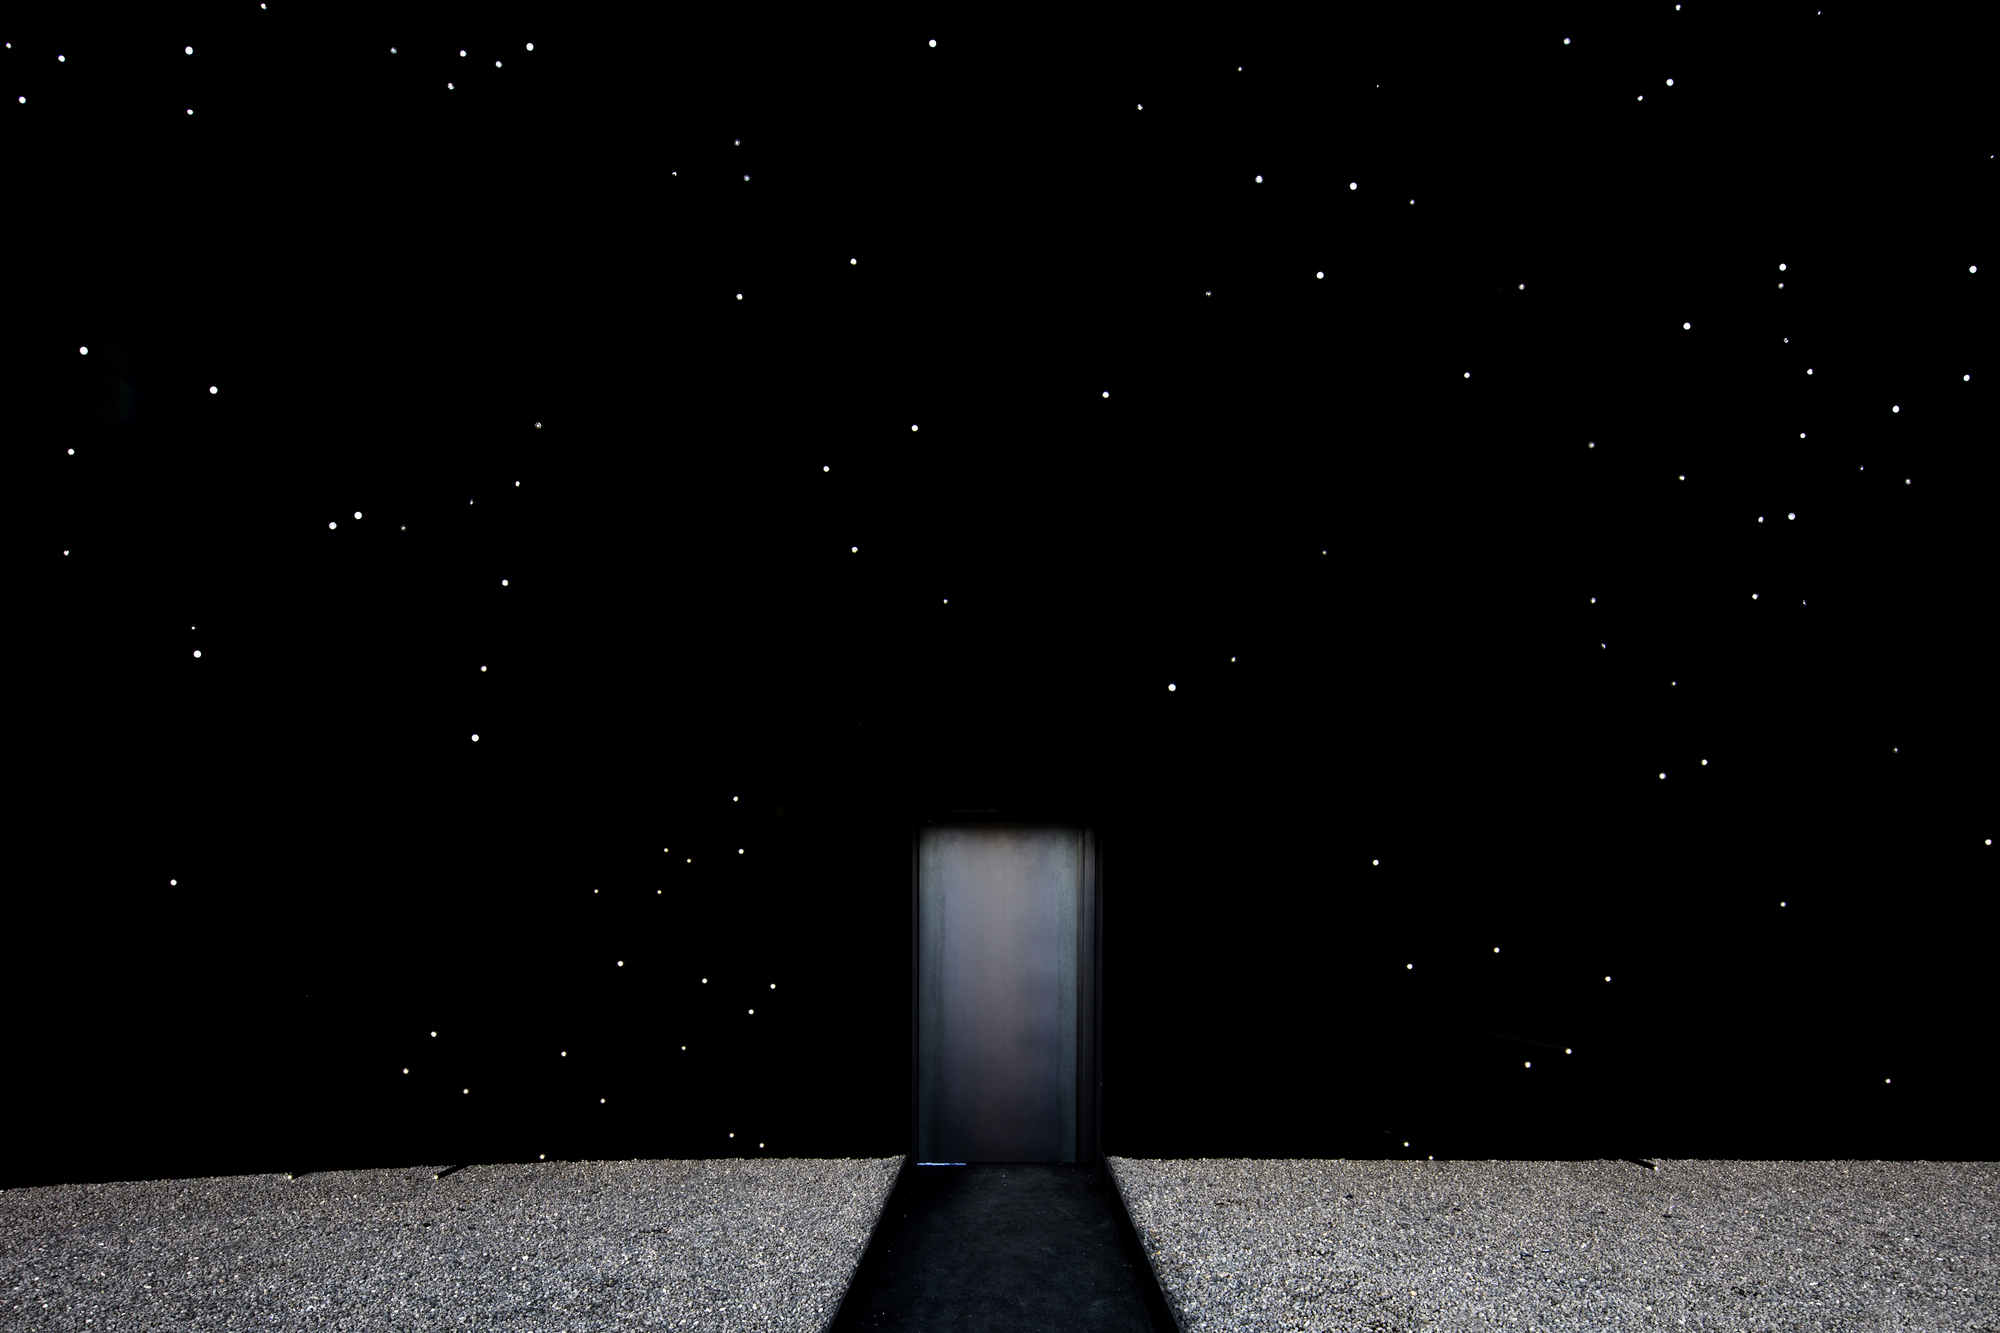 Asif Khan Unveils Darkest Building On Earth For Winter Olympics